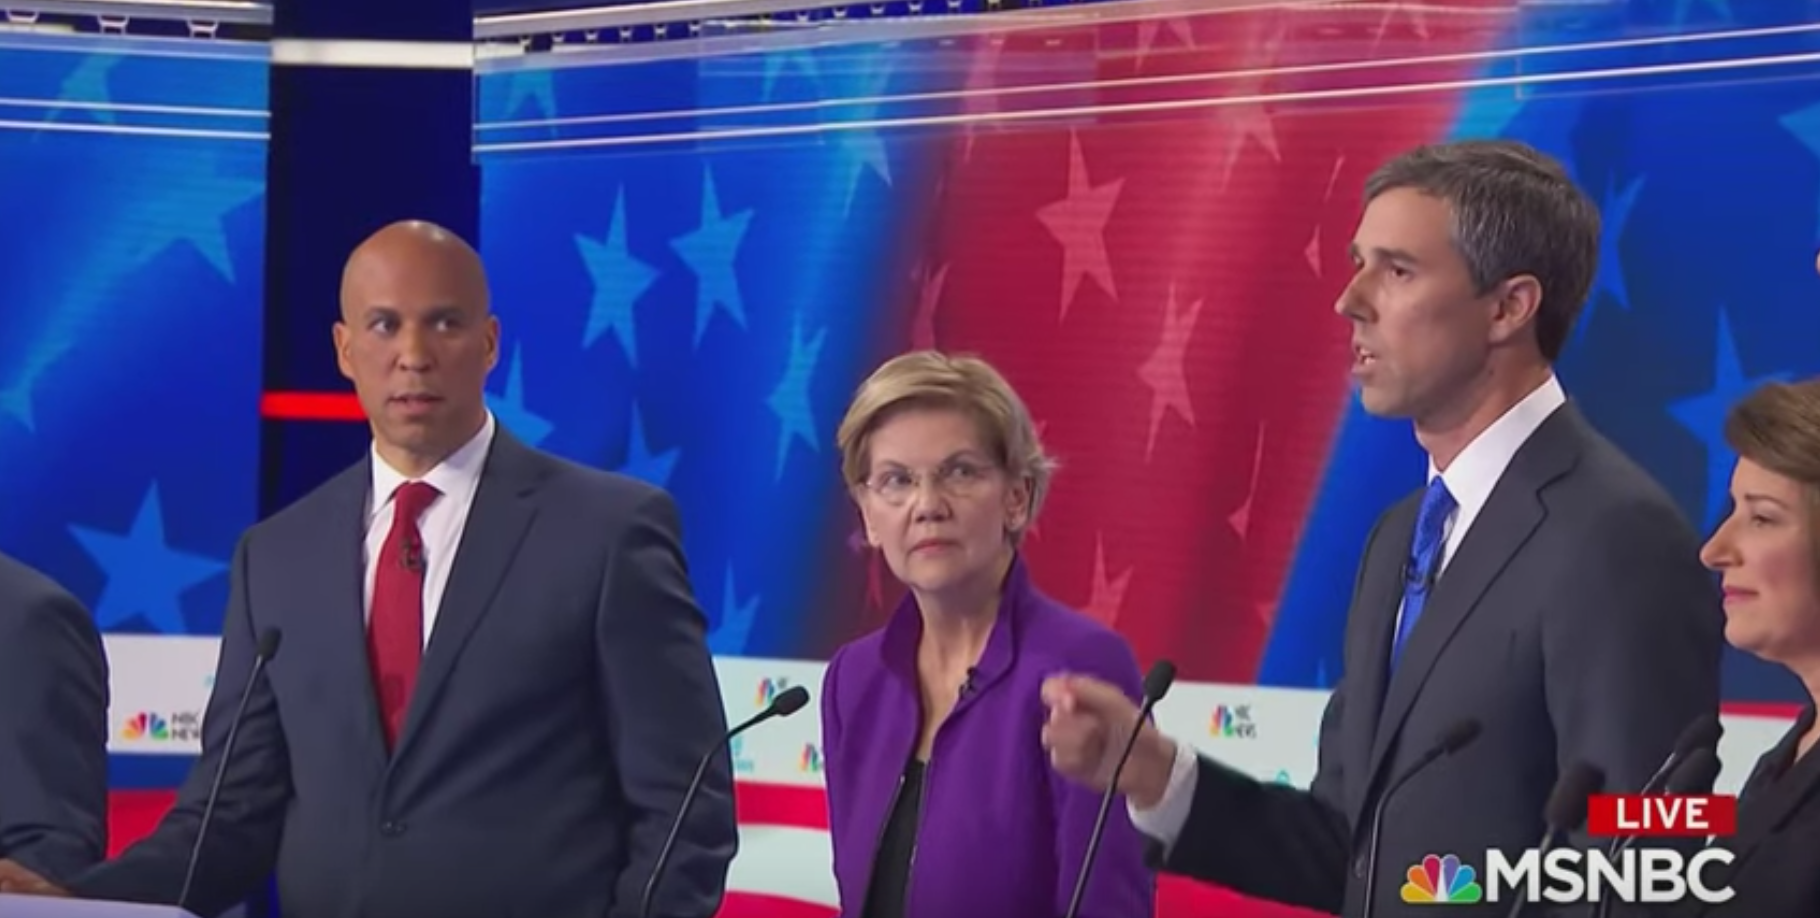 Corey Booker giving Beto the side-eye as the latter got to speak terribly in Spanish before the former